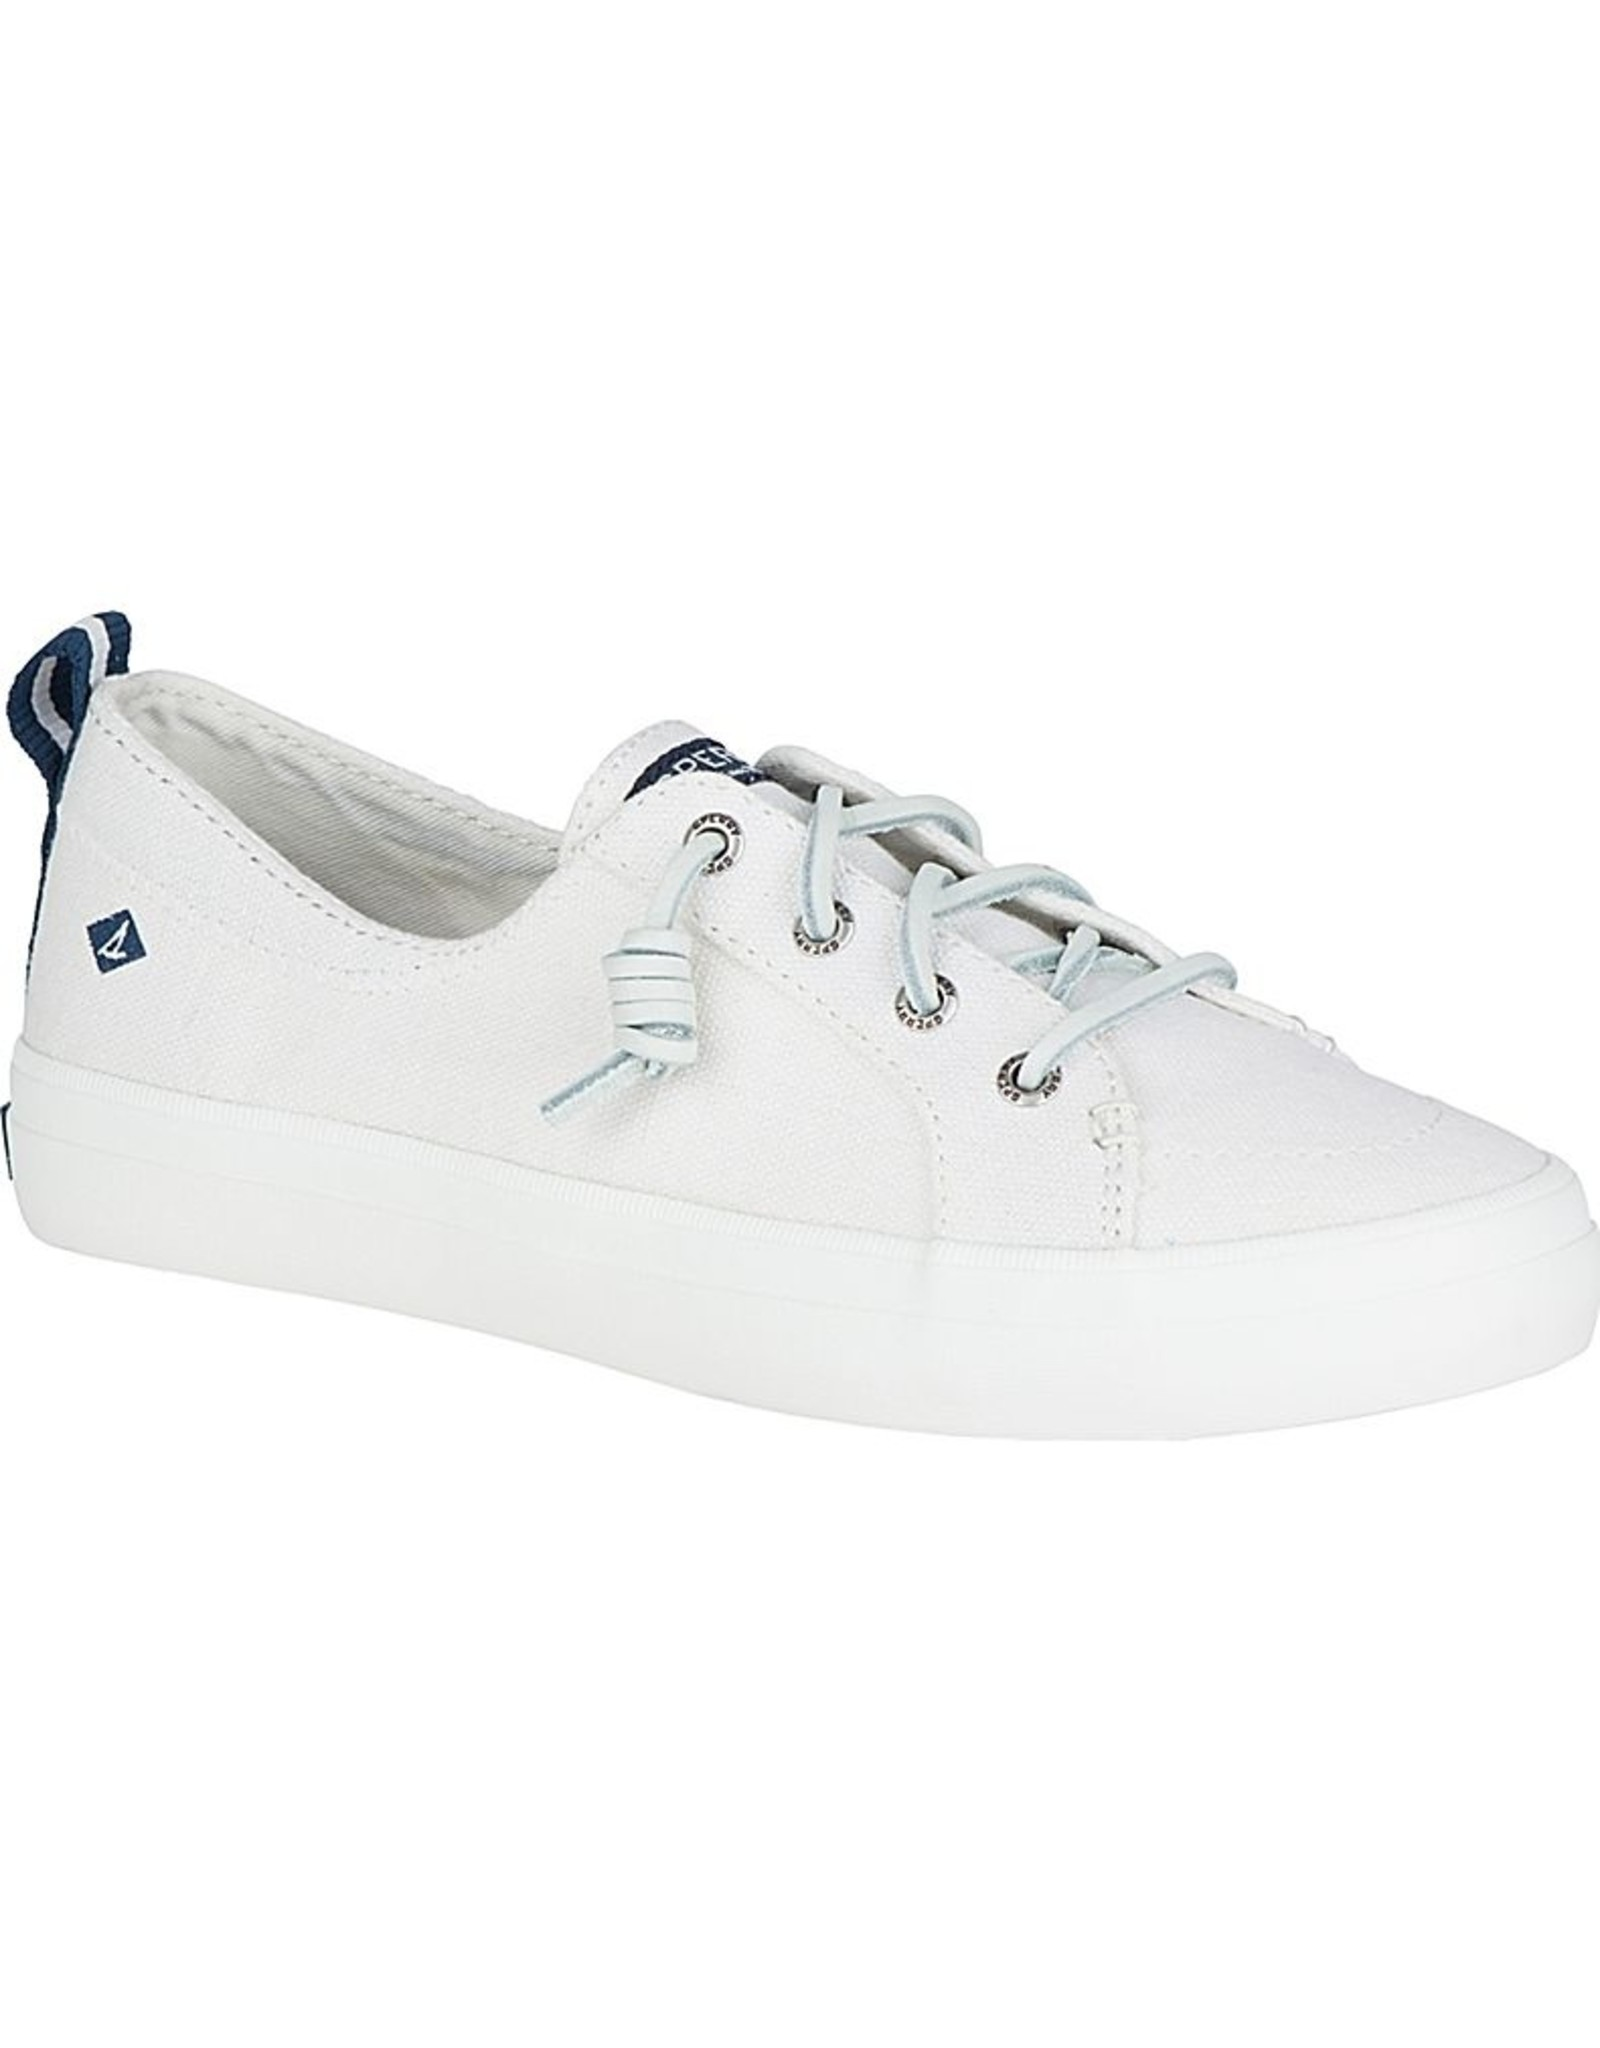 Sperry Top Siders Women's Crest Vibe - ps20